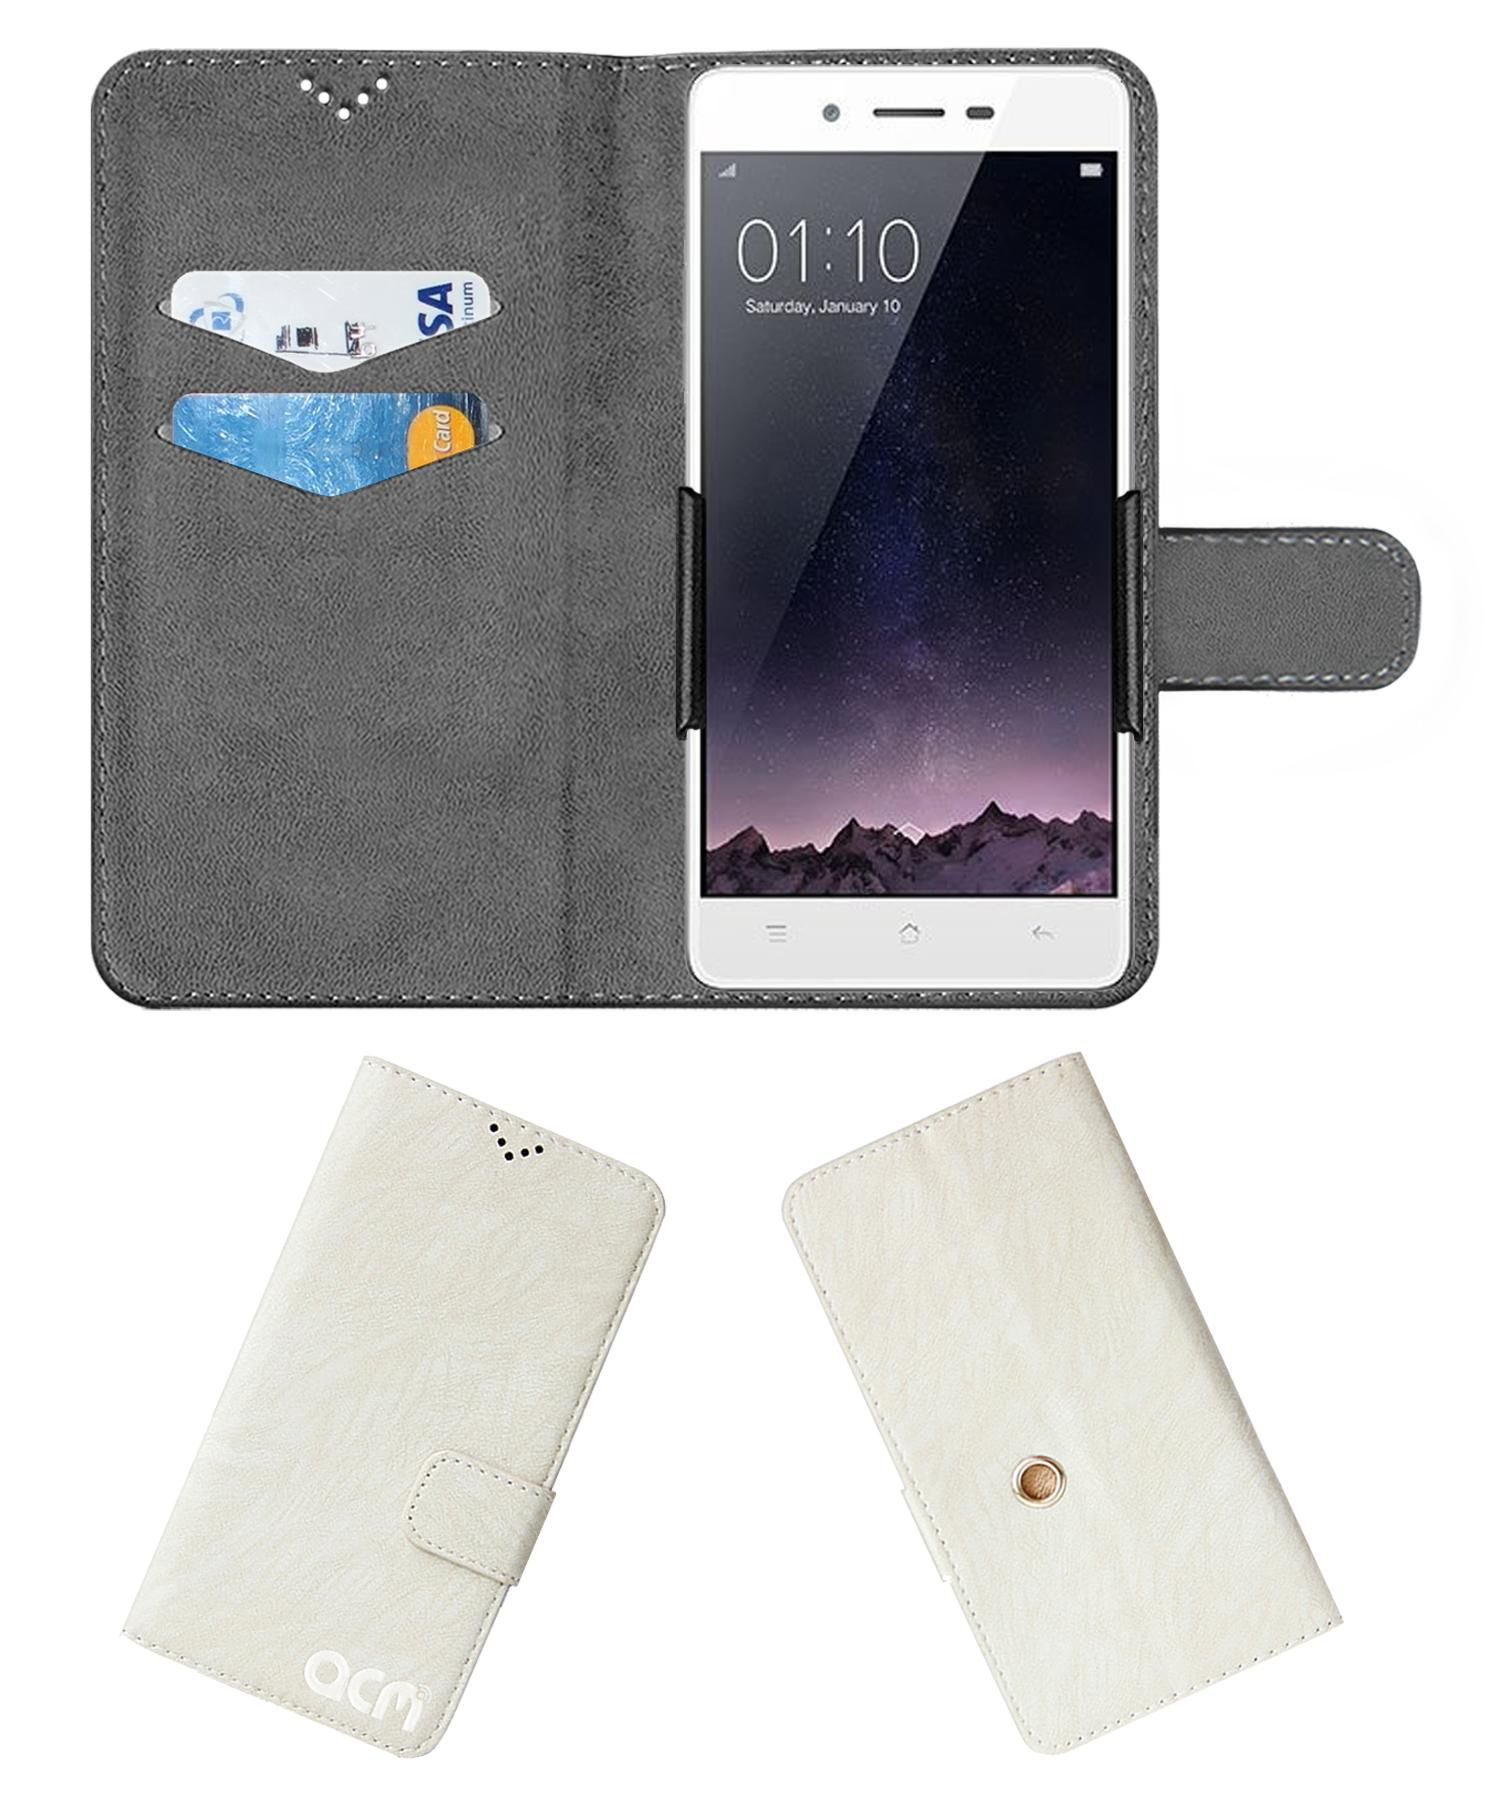 Oppo Mirror 5S Flip Cover by ACM - White Clip holder to hold your mobile securely